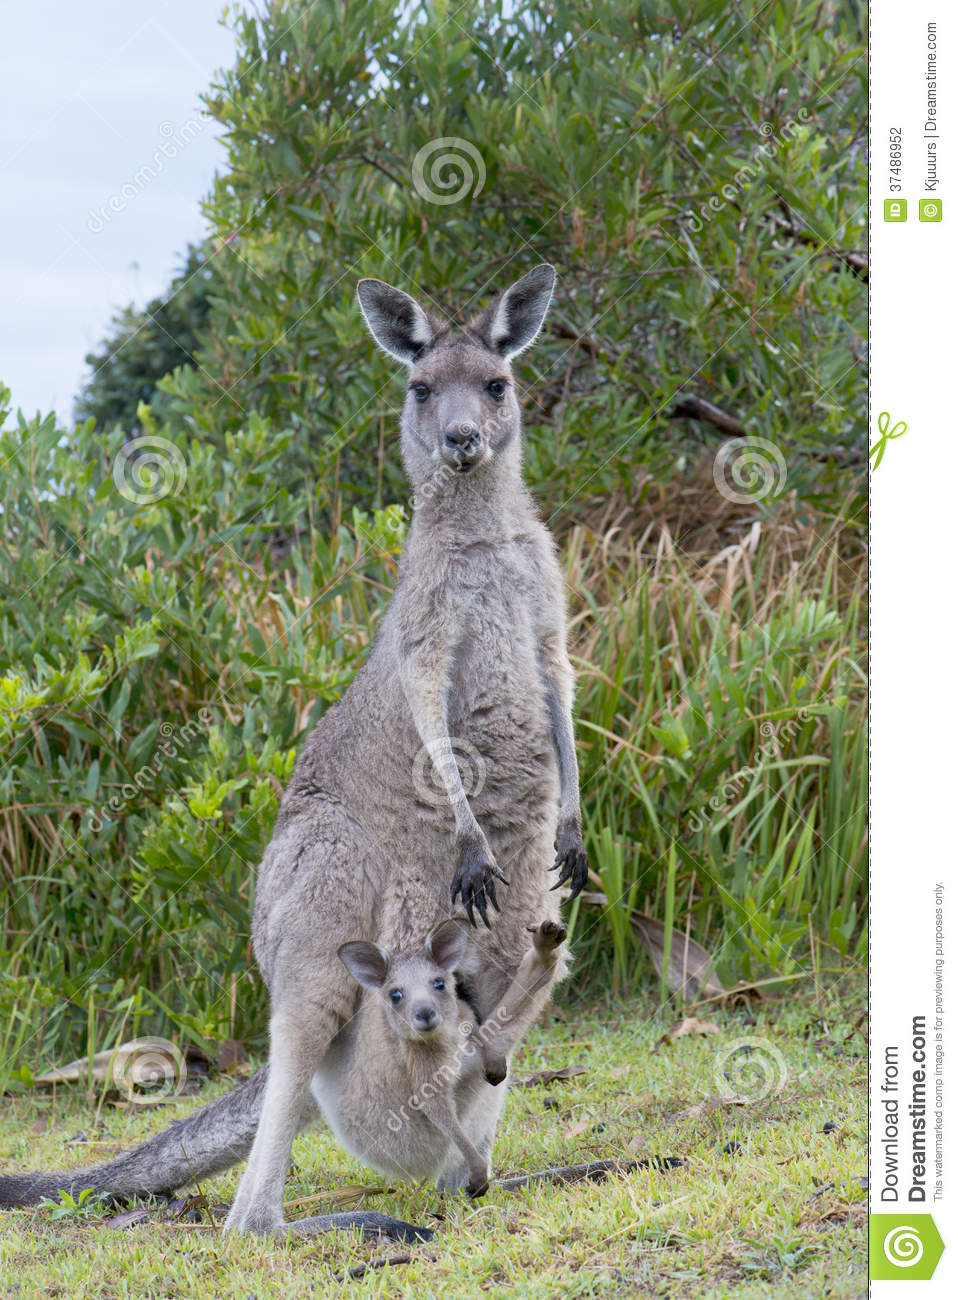 Kangaroo With a Baby Joey in Pouch